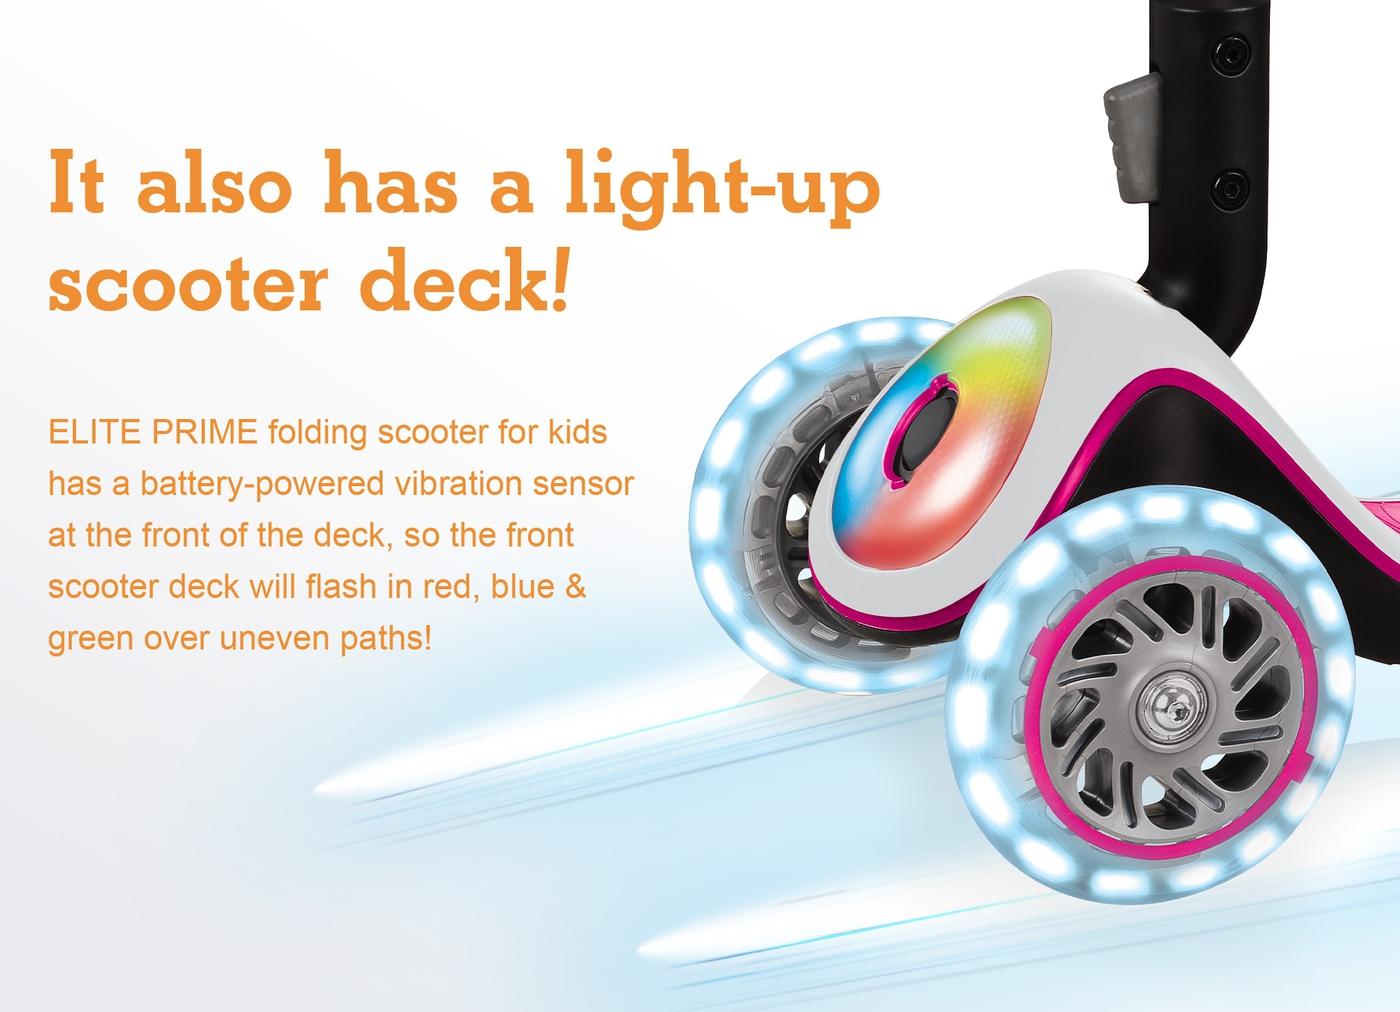 It also has a light-up scooter deck!